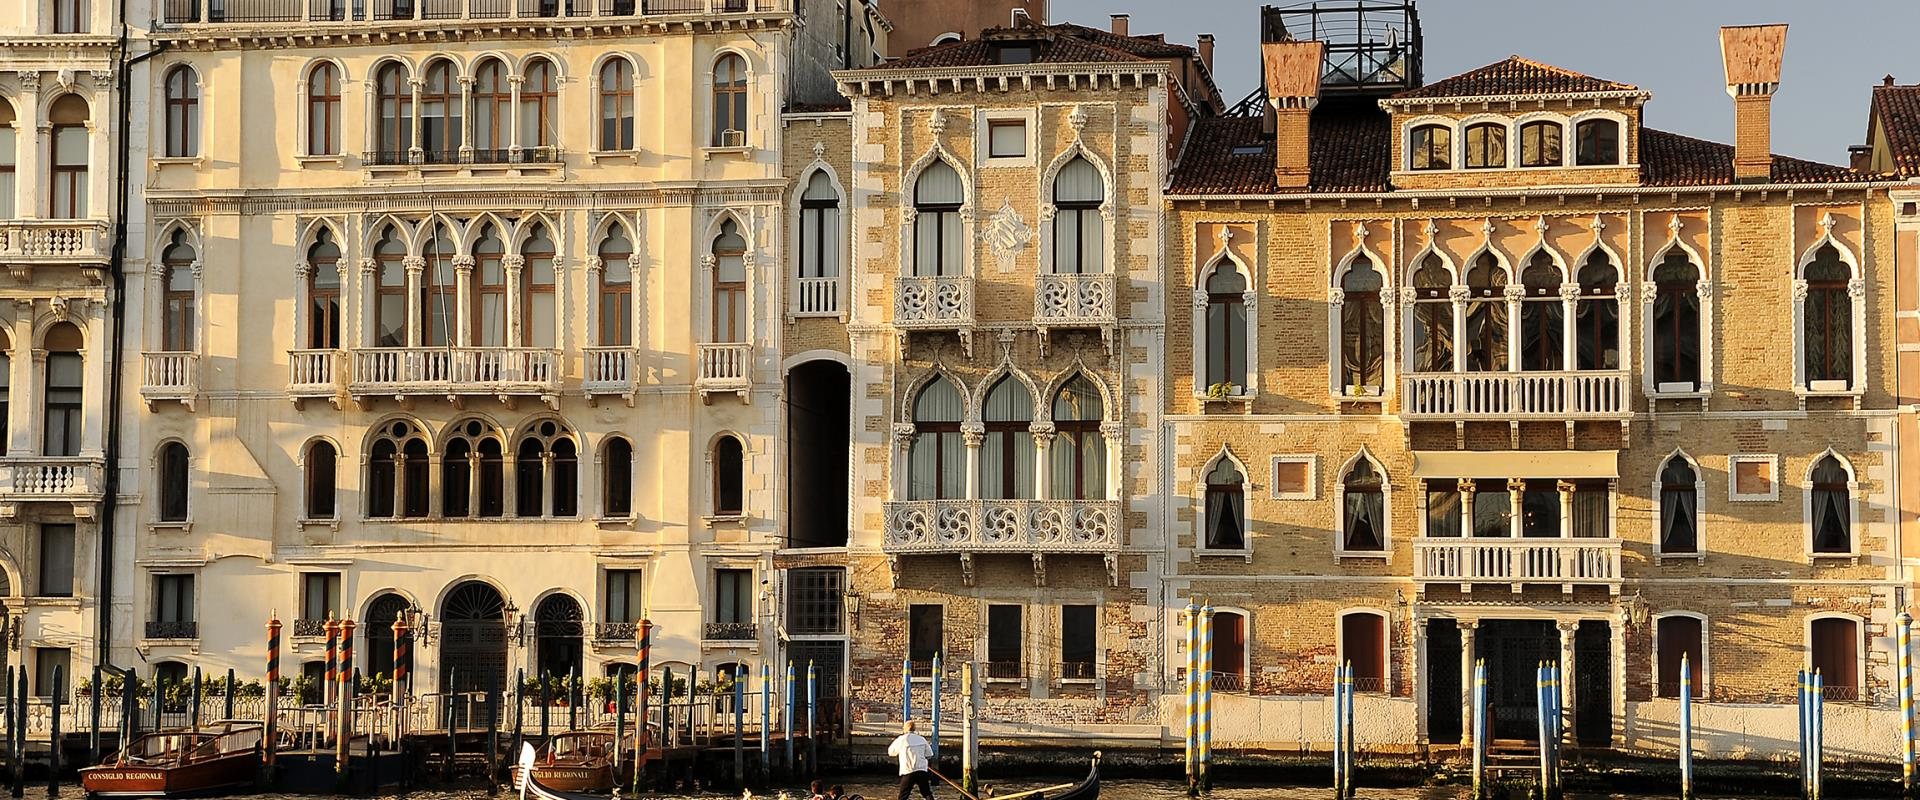 Looking for a 4 star hotel near Venice? Best Western Hotel Bologna in Mestre, allows you to reach in a few minutes and comfortably downtown Venice!